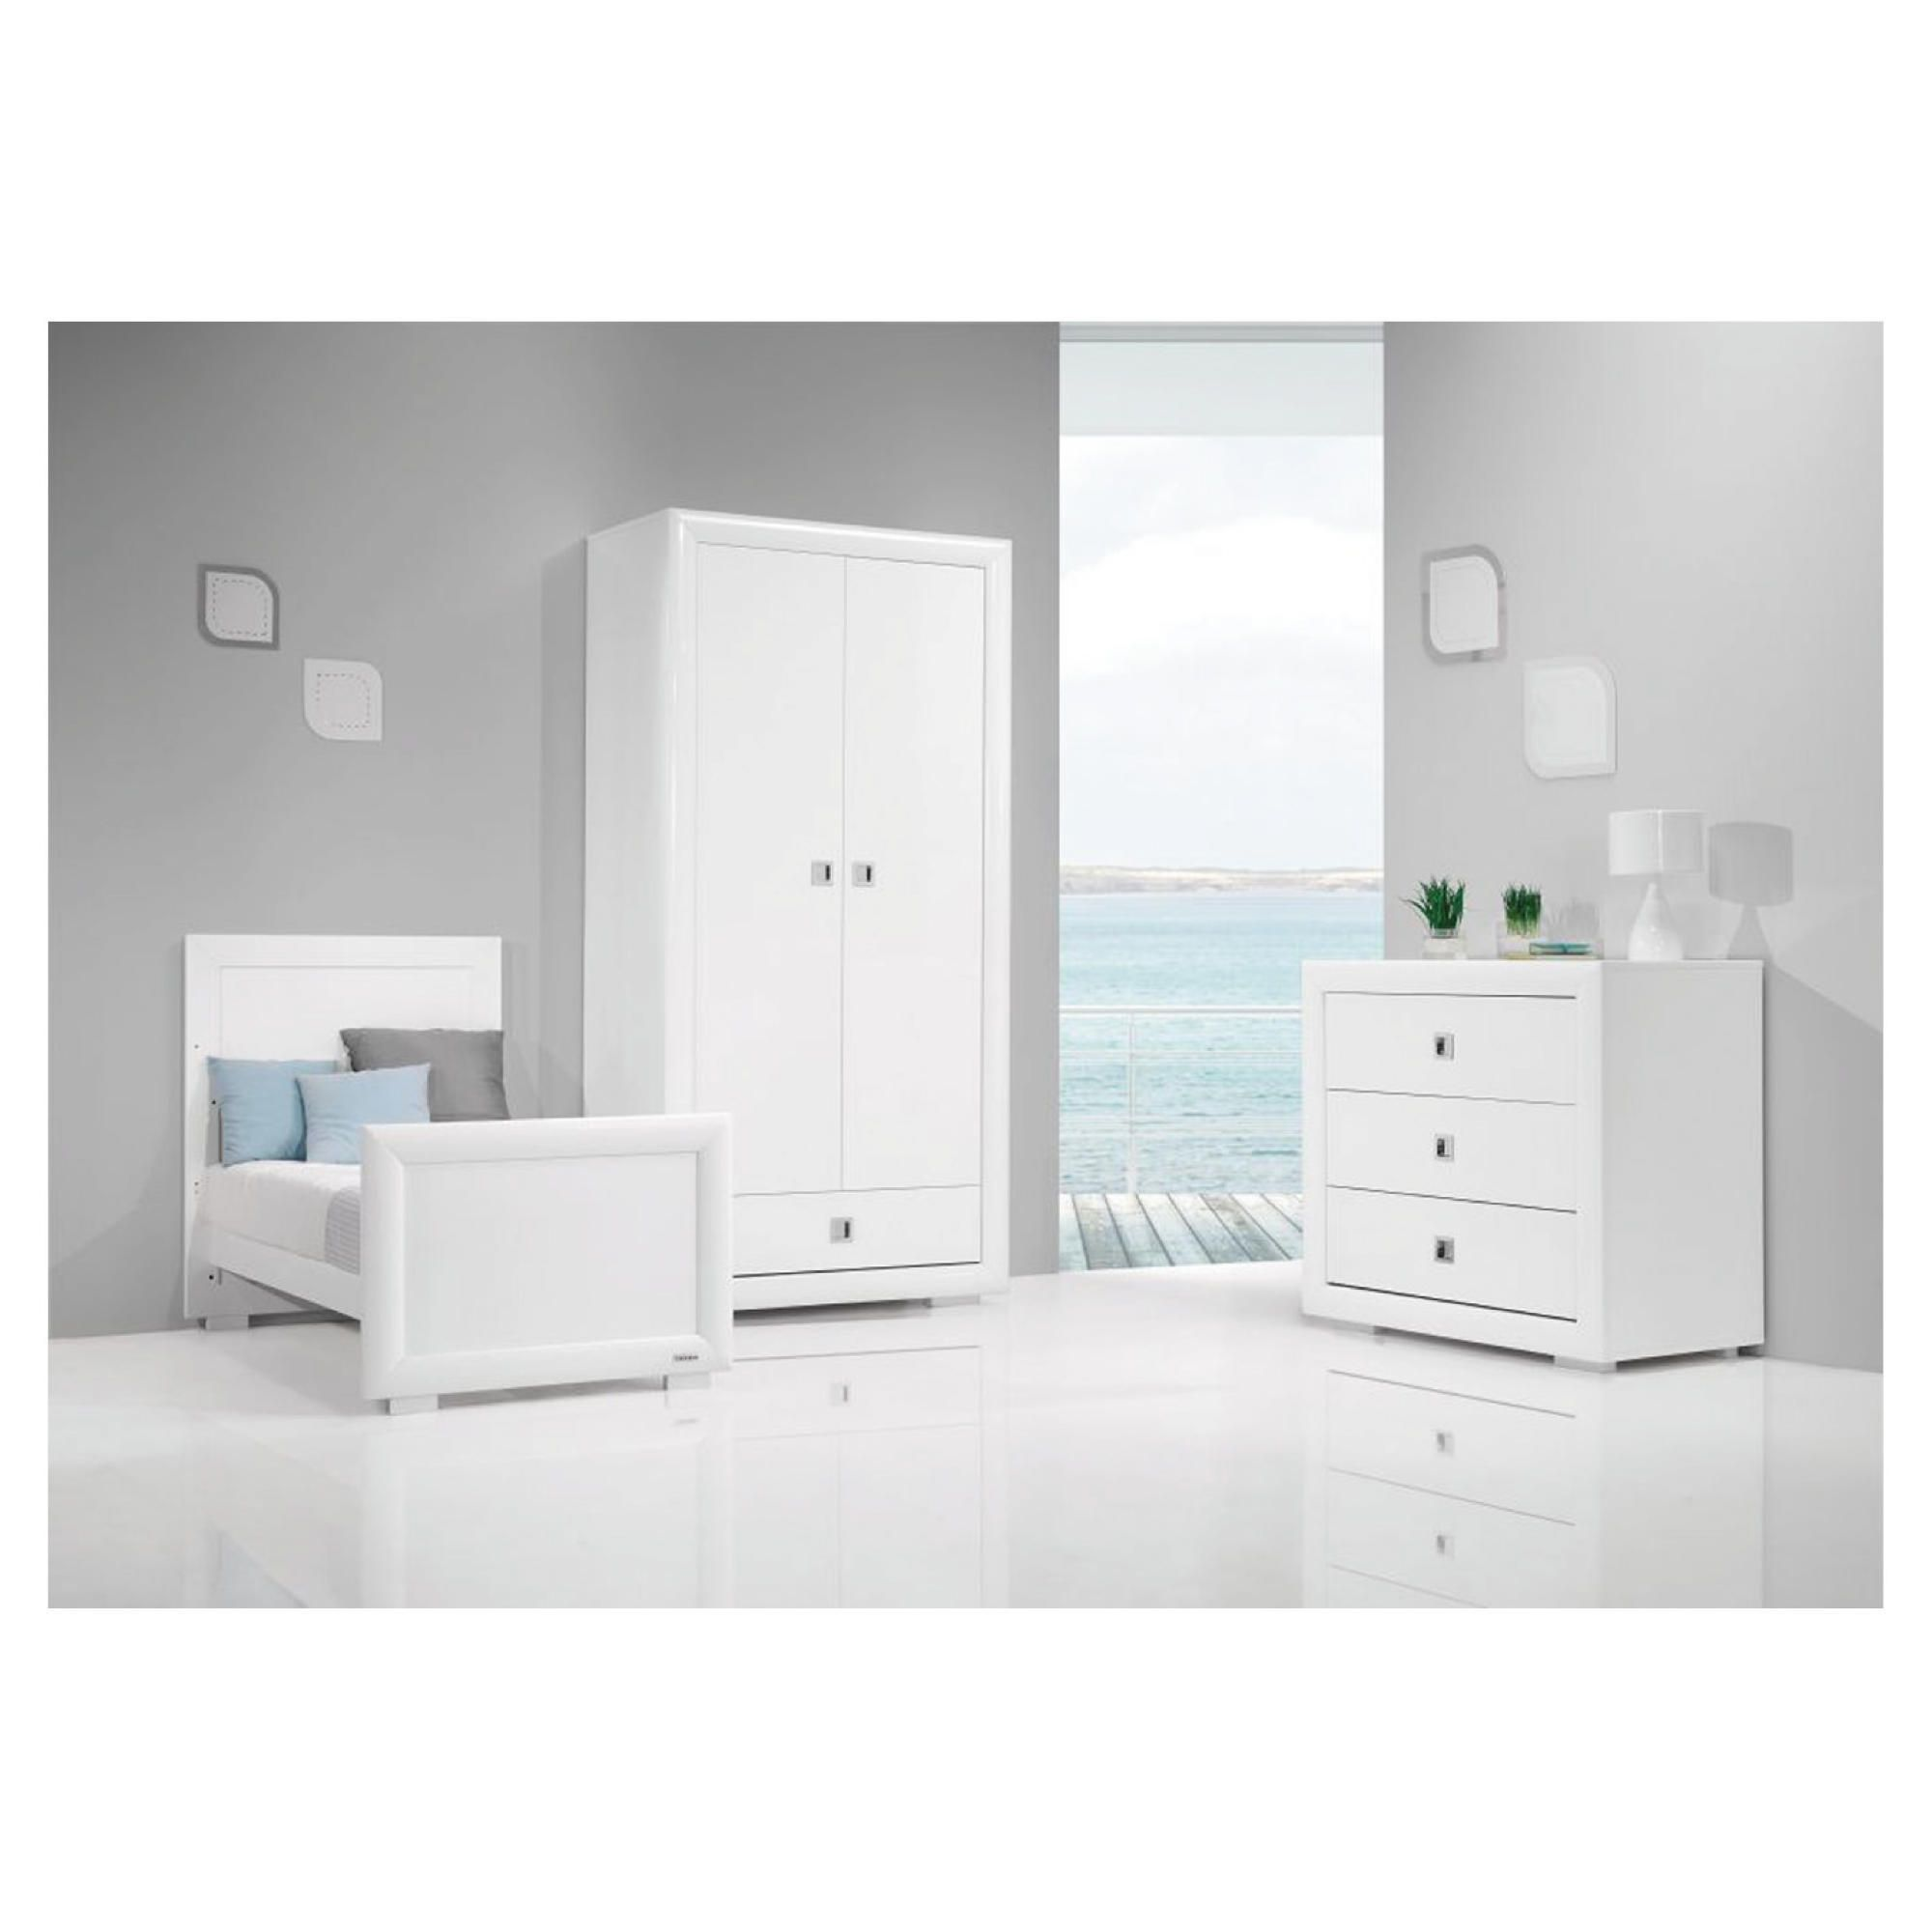 Bebecar series white art 3 piece roomset at Tescos Direct